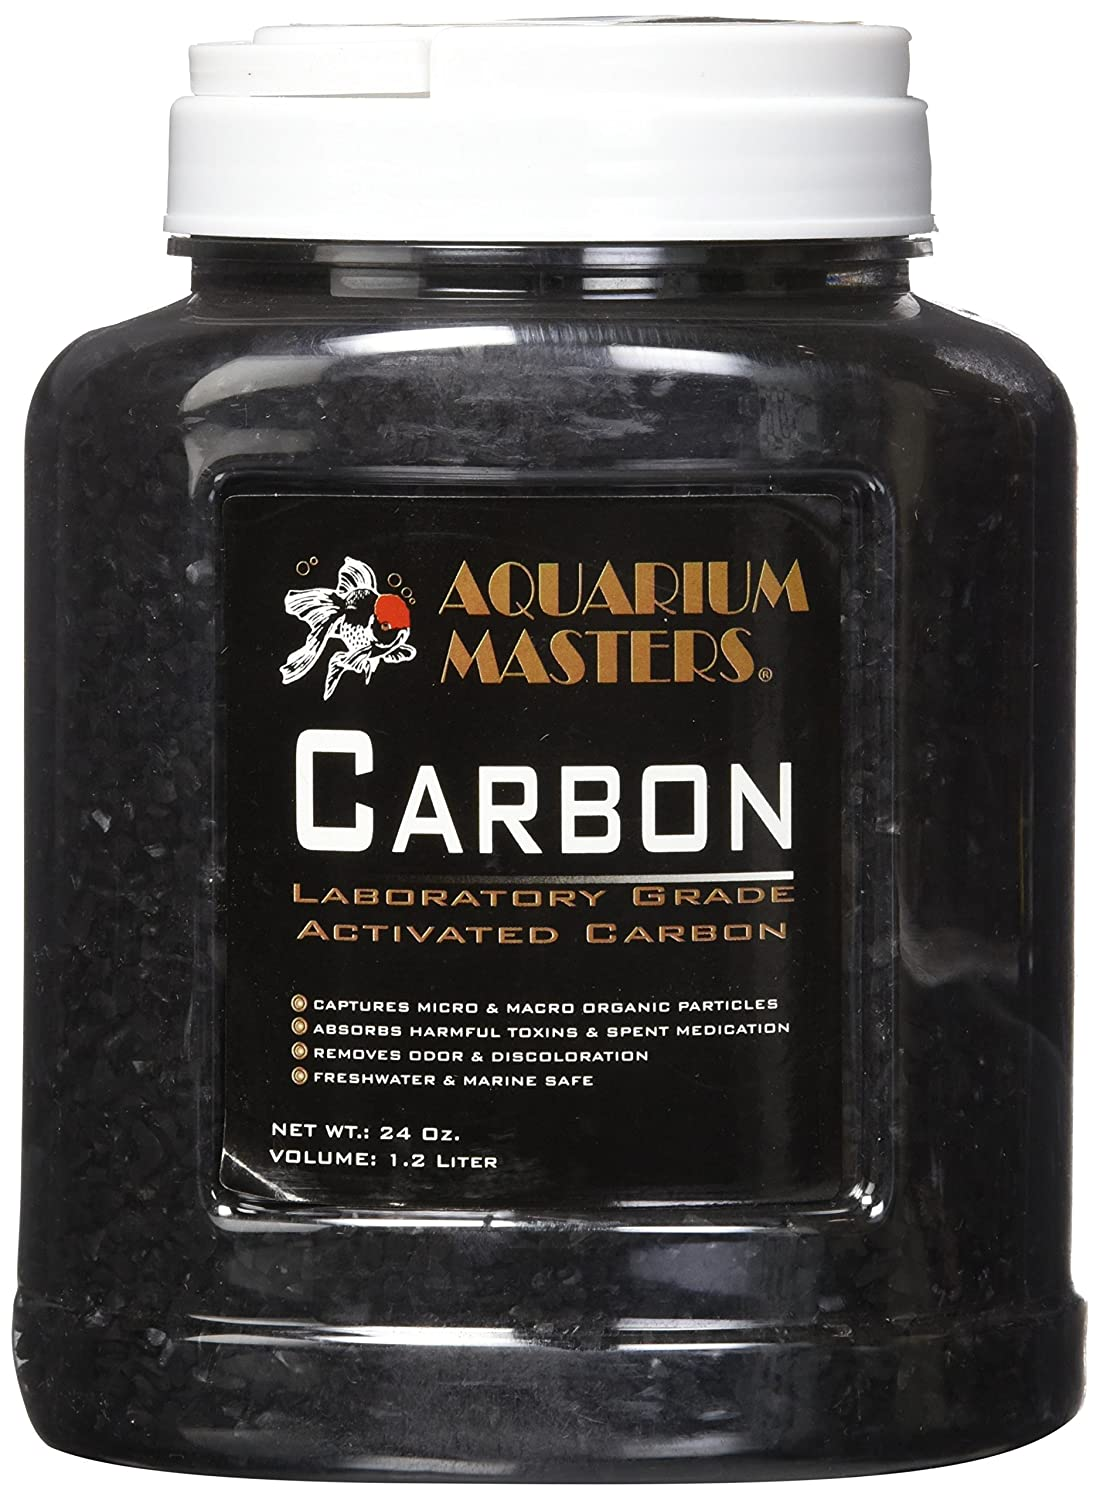 24 Ounce Premium Laboratory Grade Super Activated Carbon with Free Media Bag Inside